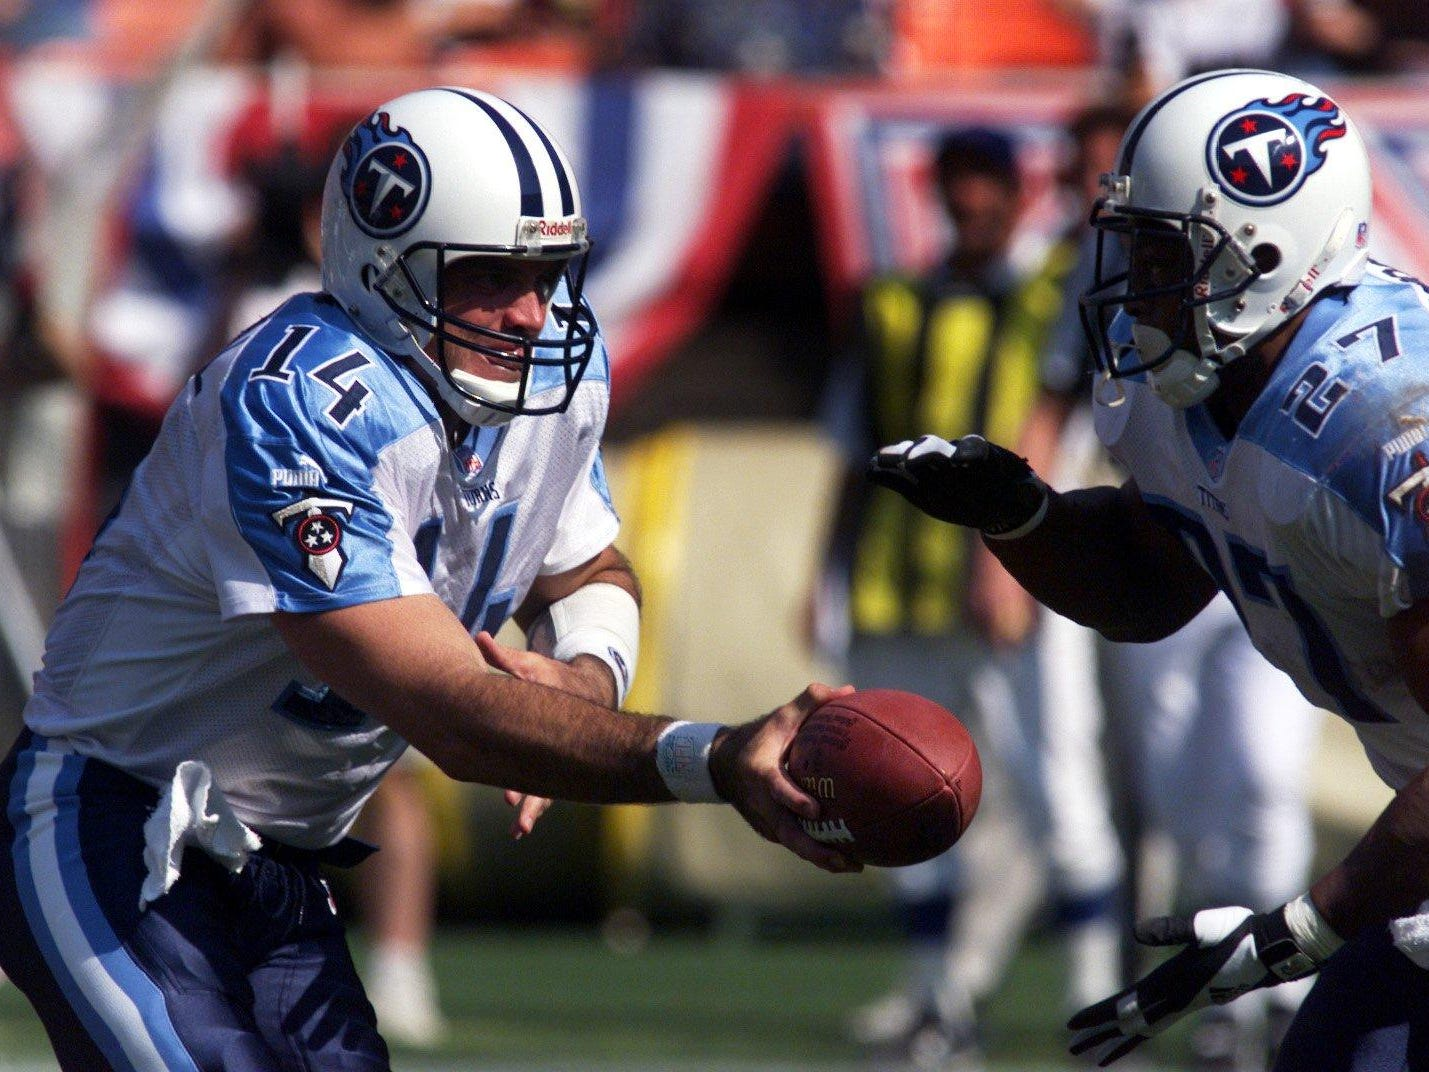 Neil O'Donnell -- 2 games started as a Titans quarterback since 1981 Here, O'Donnell hands off to Eddie George against the 49ers at Candlestick Park in San Francisco.